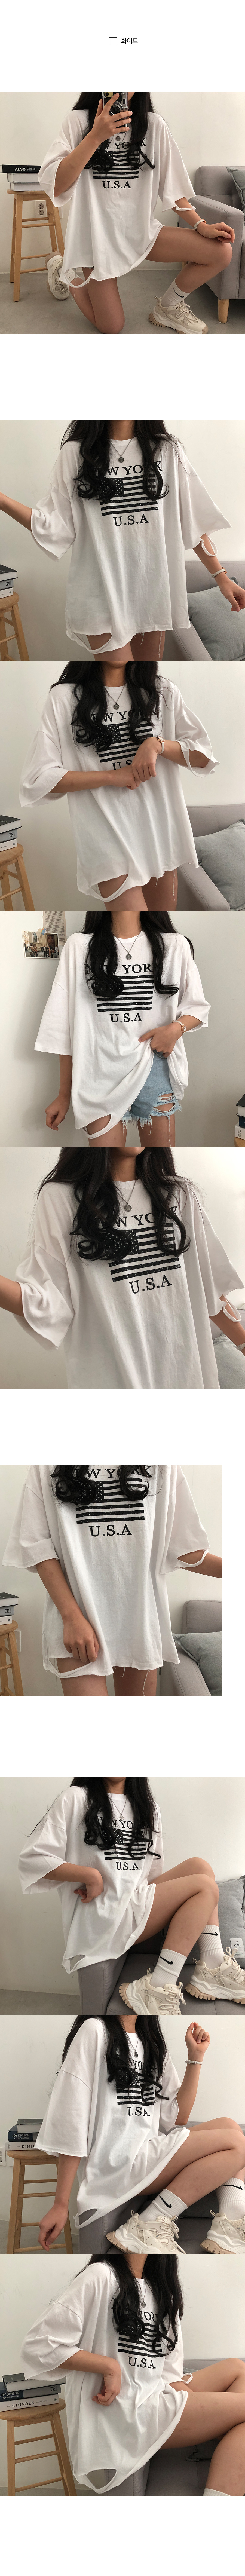 American Vintage Faded Overfit Short Sleeve T-shirt